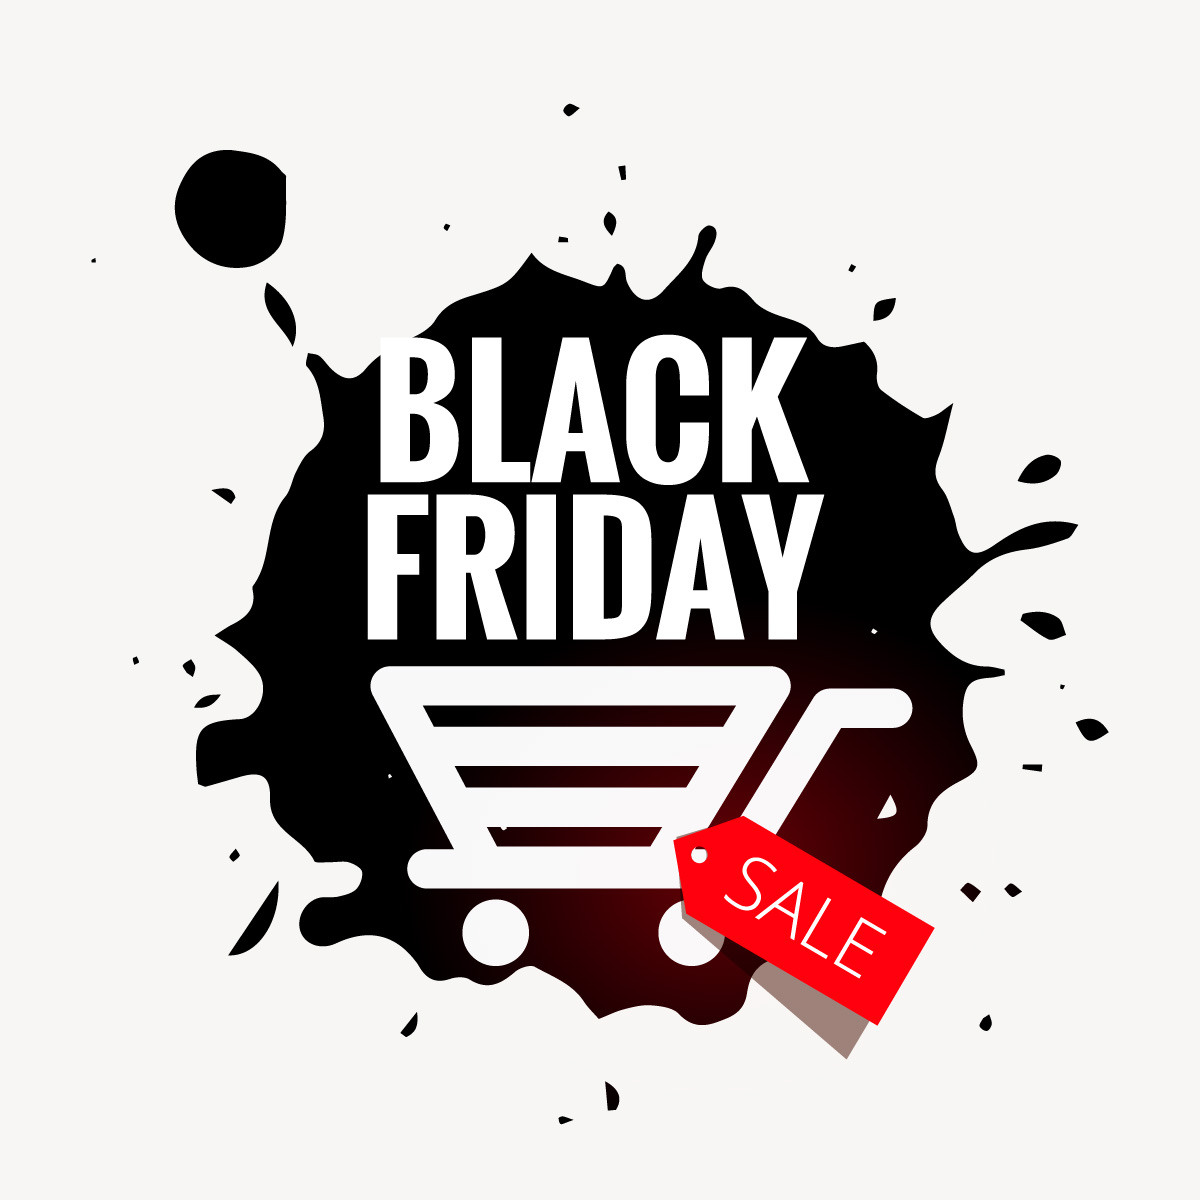 Black Friday Deals Countdown